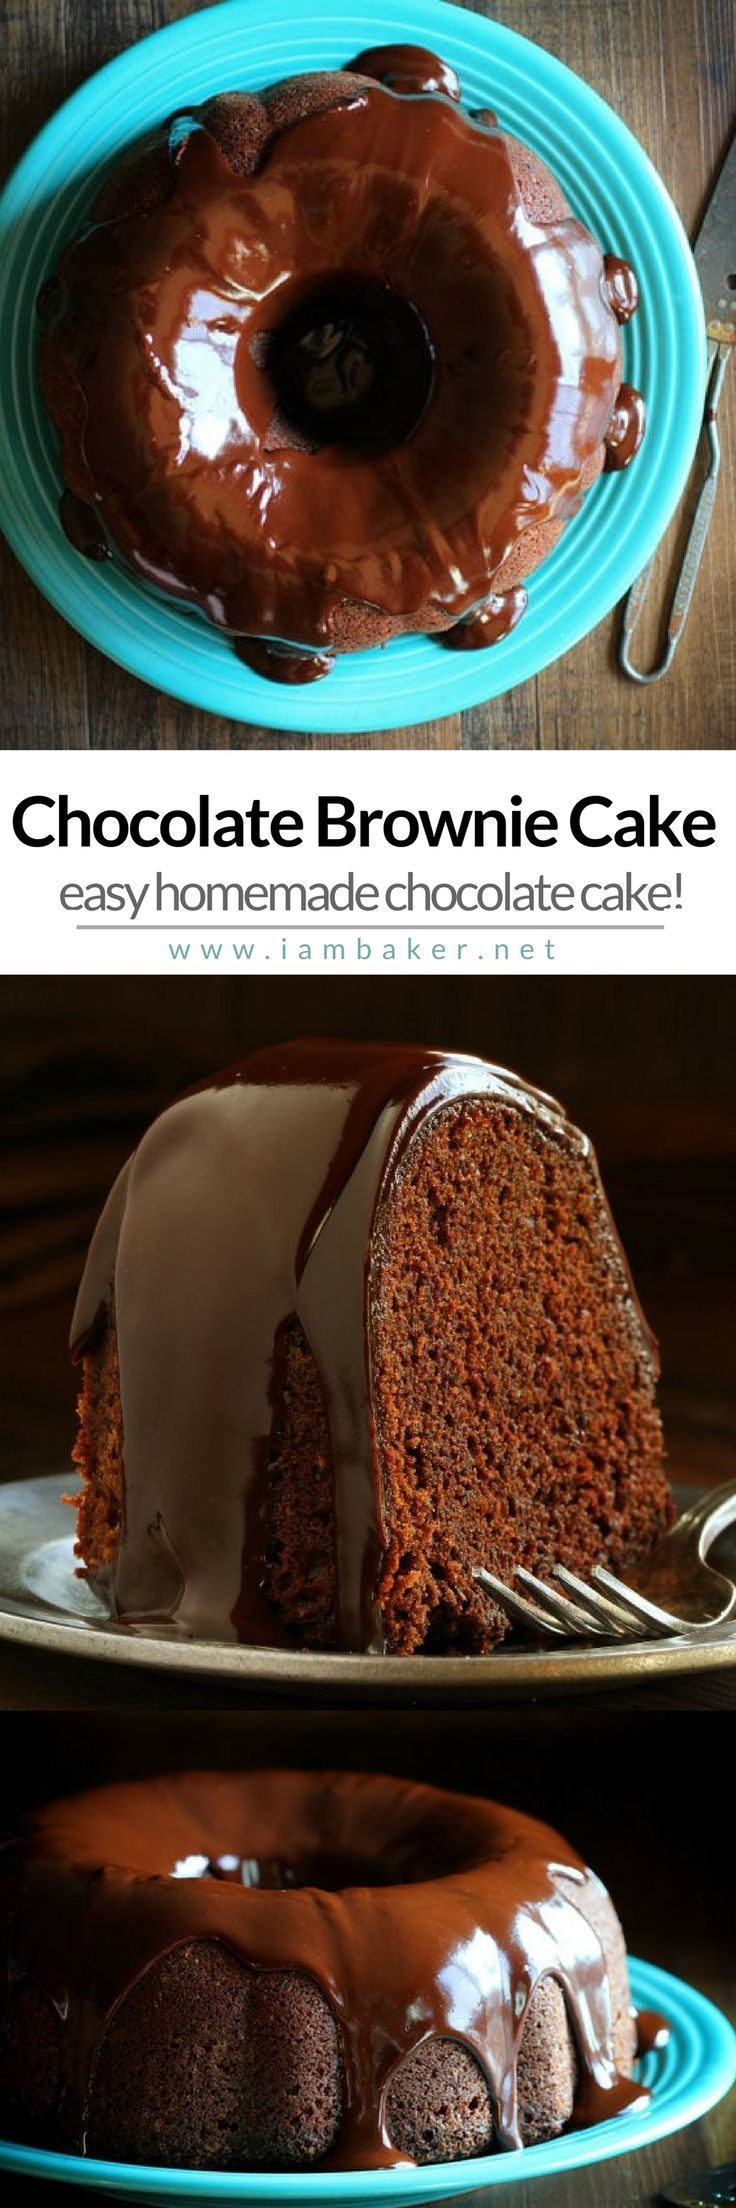 If you love to create simple yummy dessert recipes , you gotta try this Chocolate Brownie Cake! Sweet homemade and the easiest recipe you can follow at I am Baker.